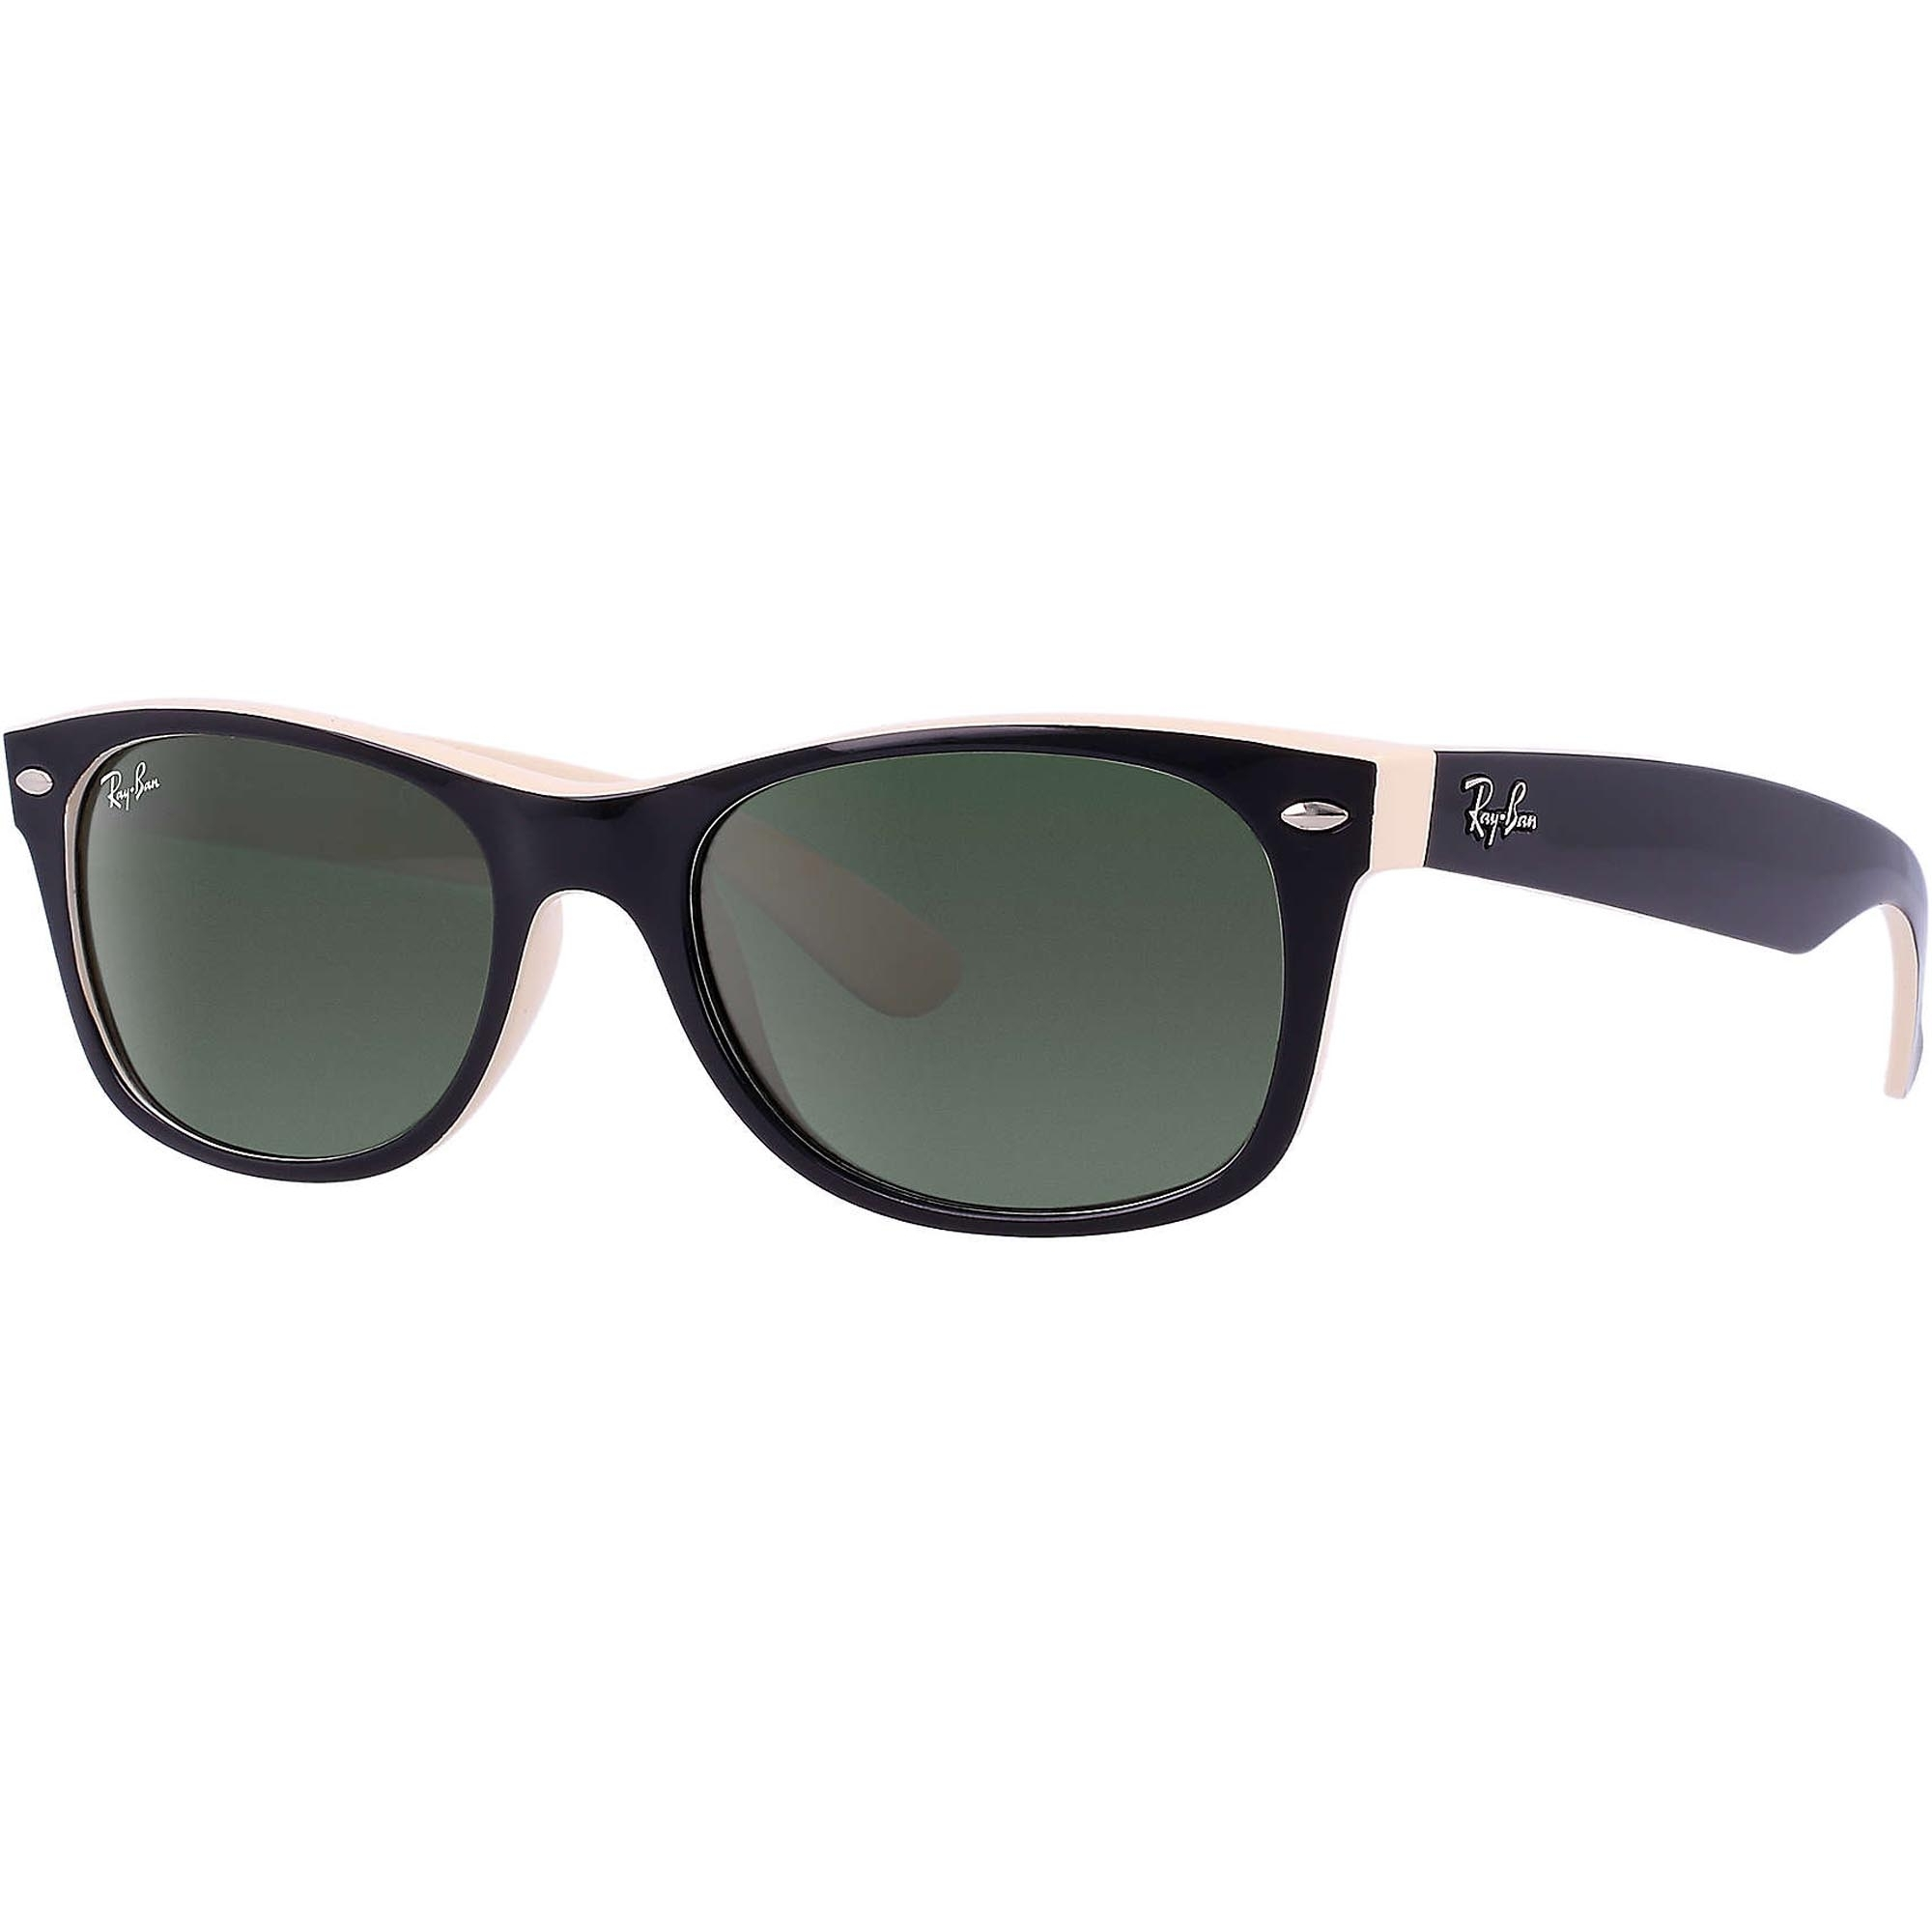 dd2b577c6 Ray Ban Rb 4165 855 « One More Soul